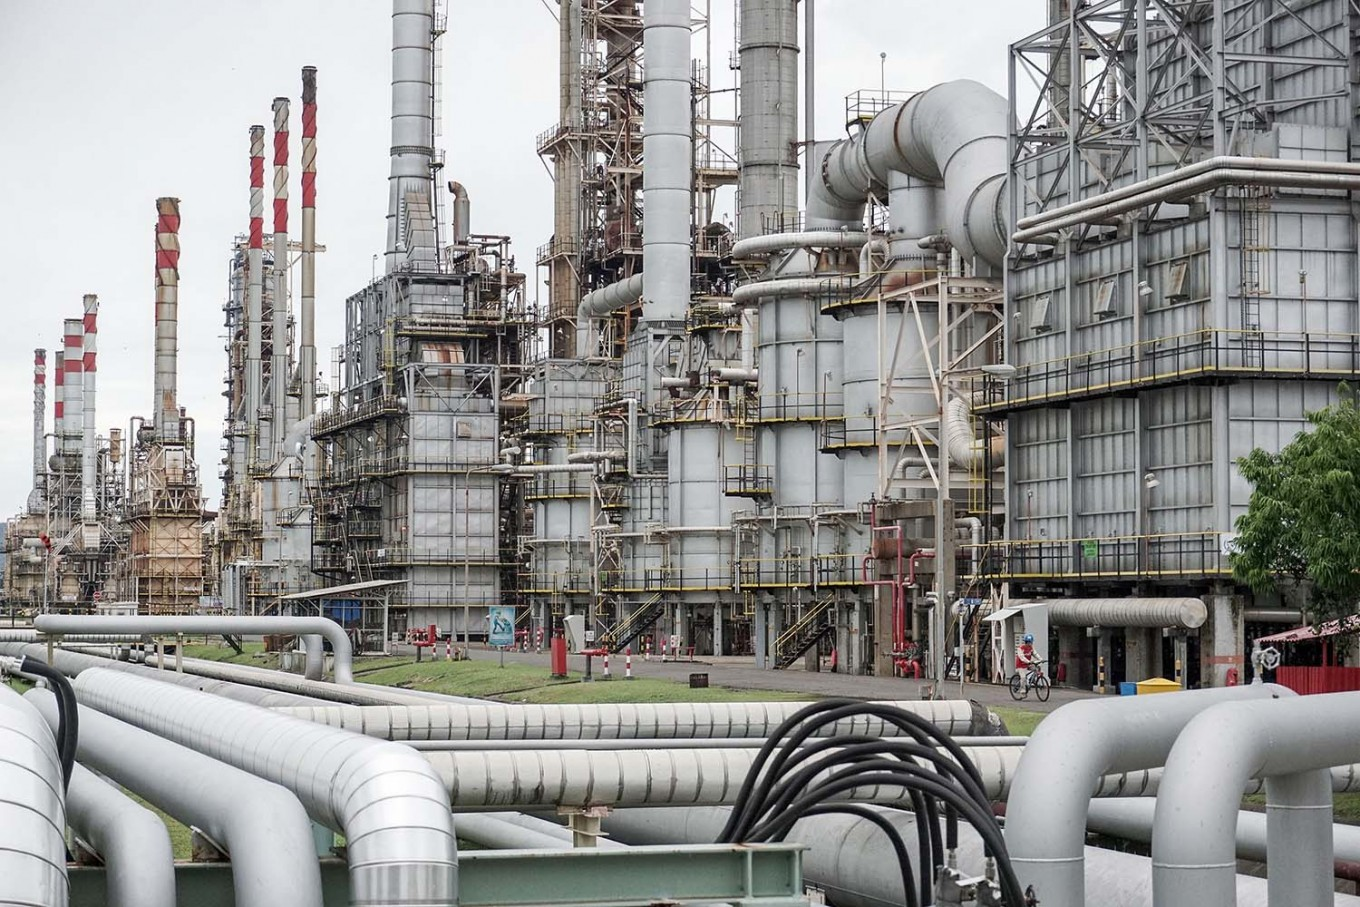 Pertamina expects to begin running Cilacap biorefinery in 2021